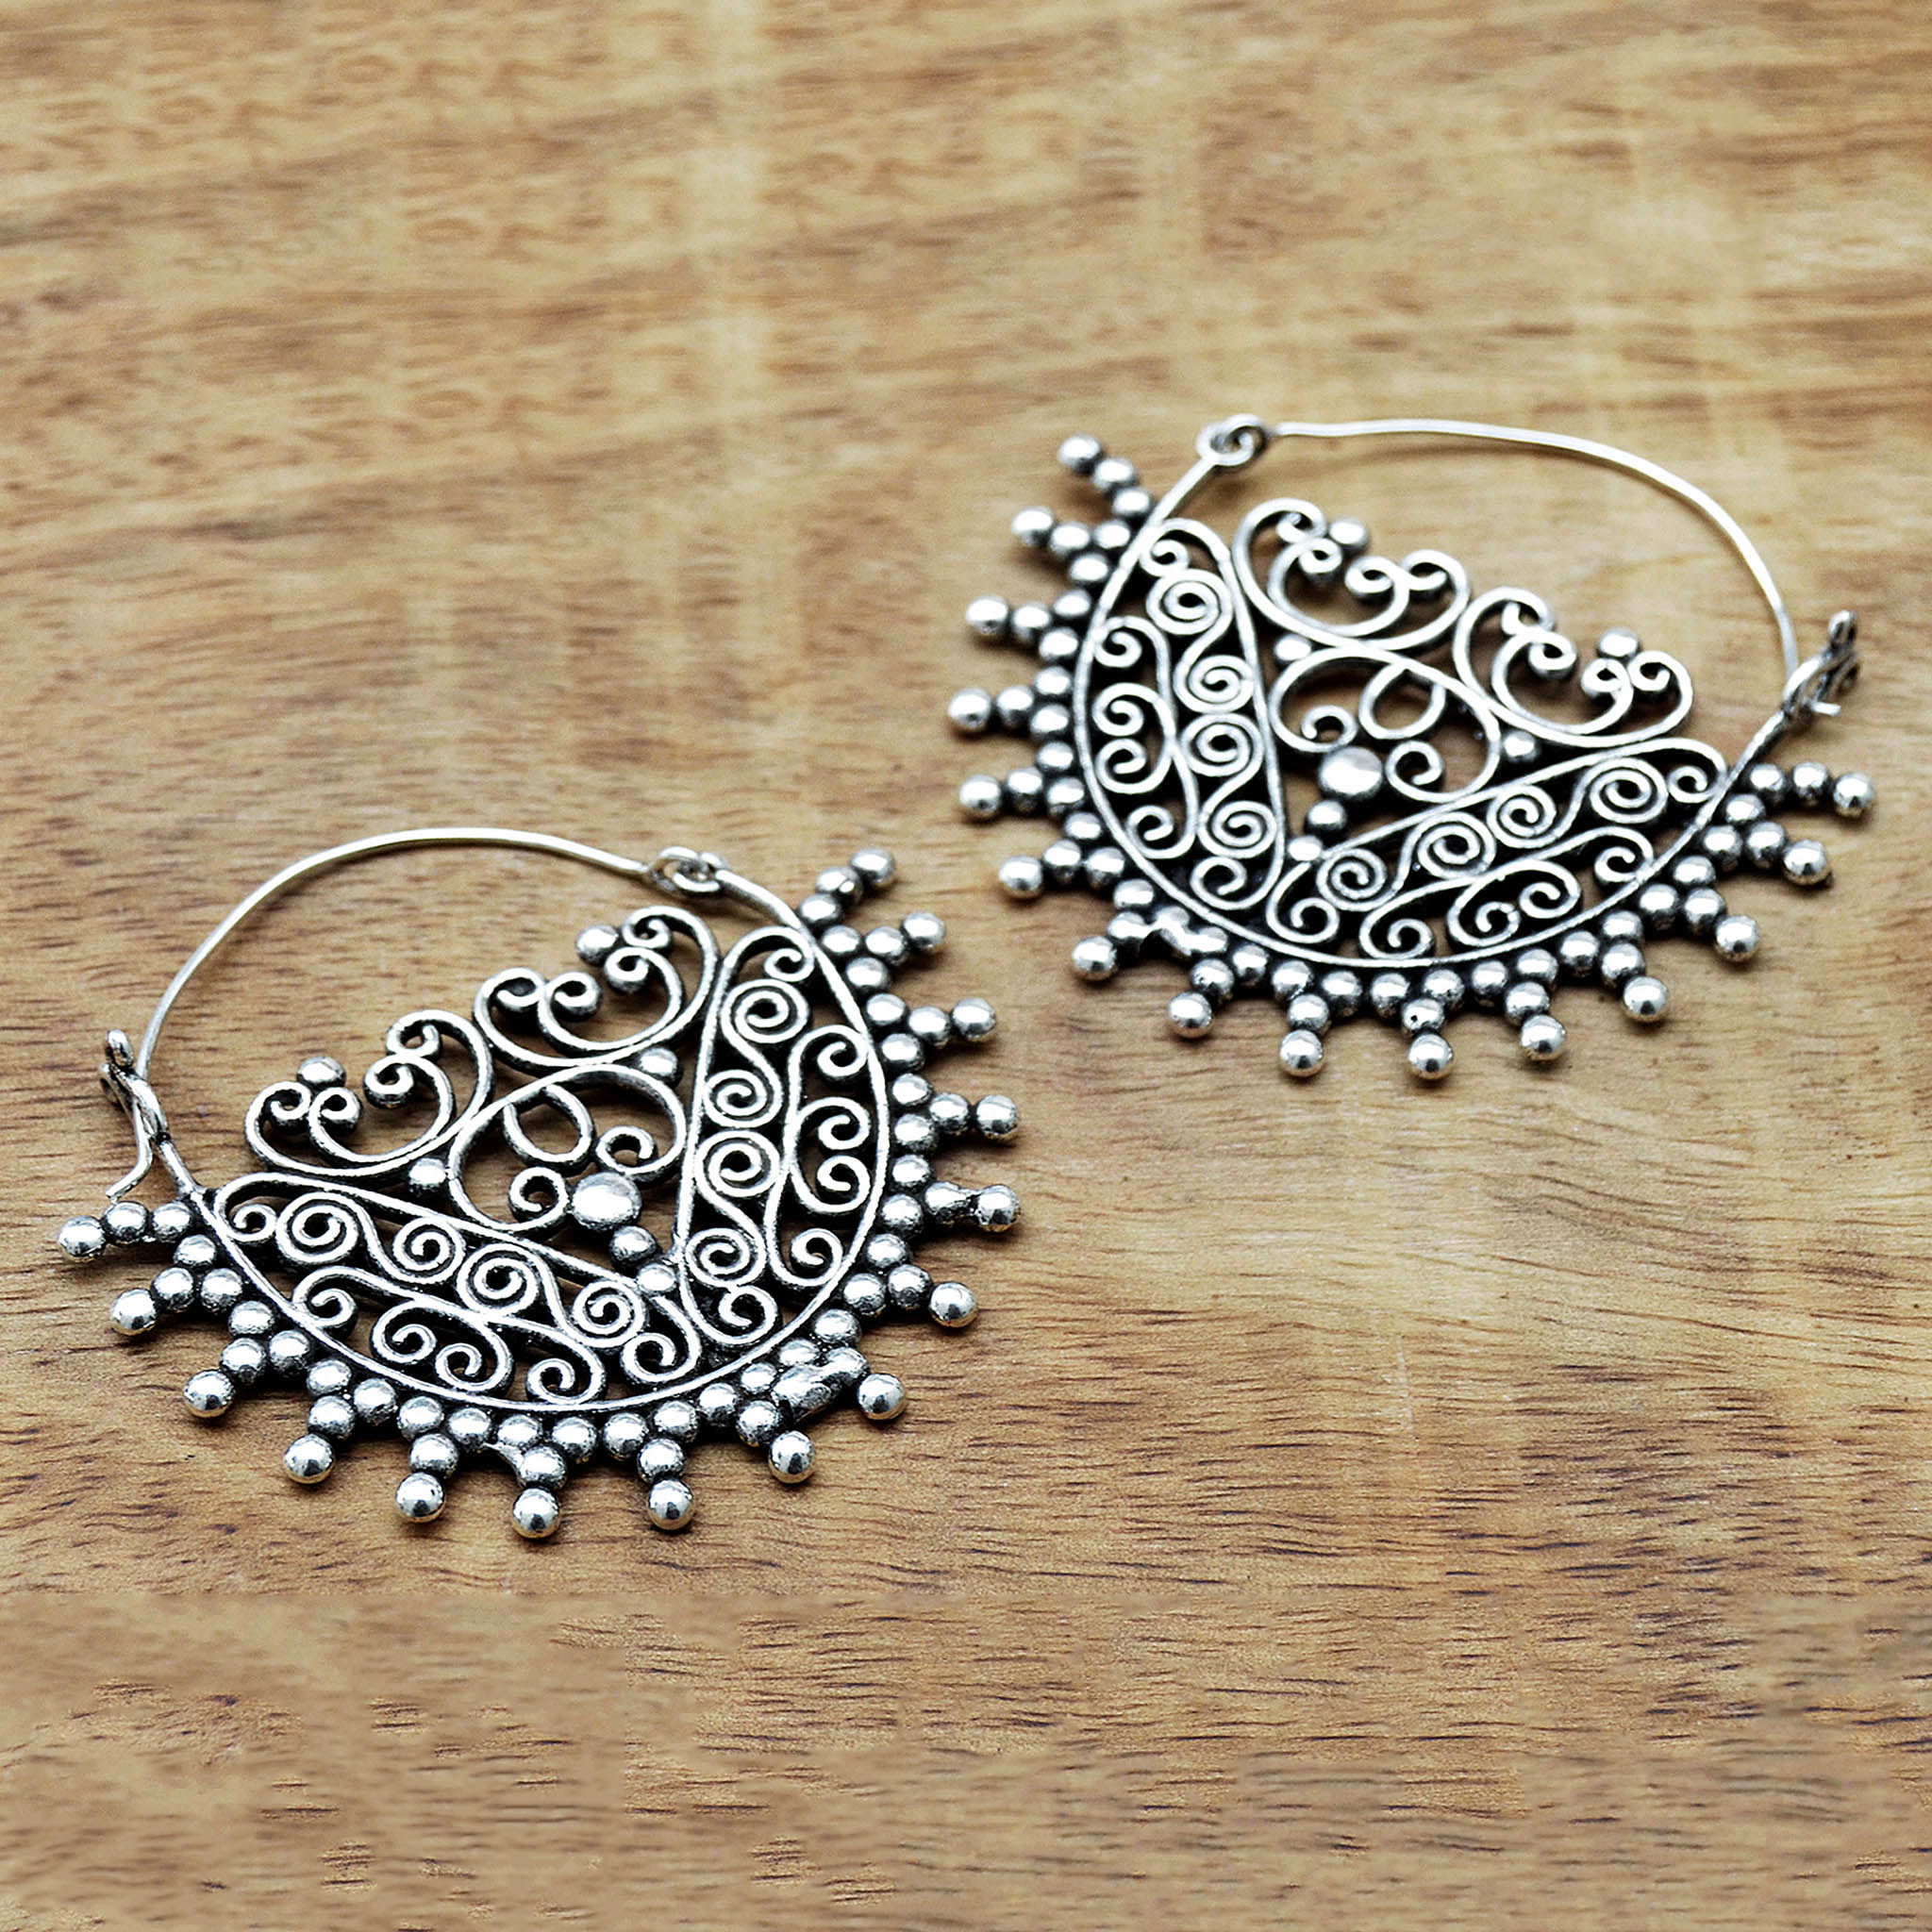 Silver Rajasthani Earrings